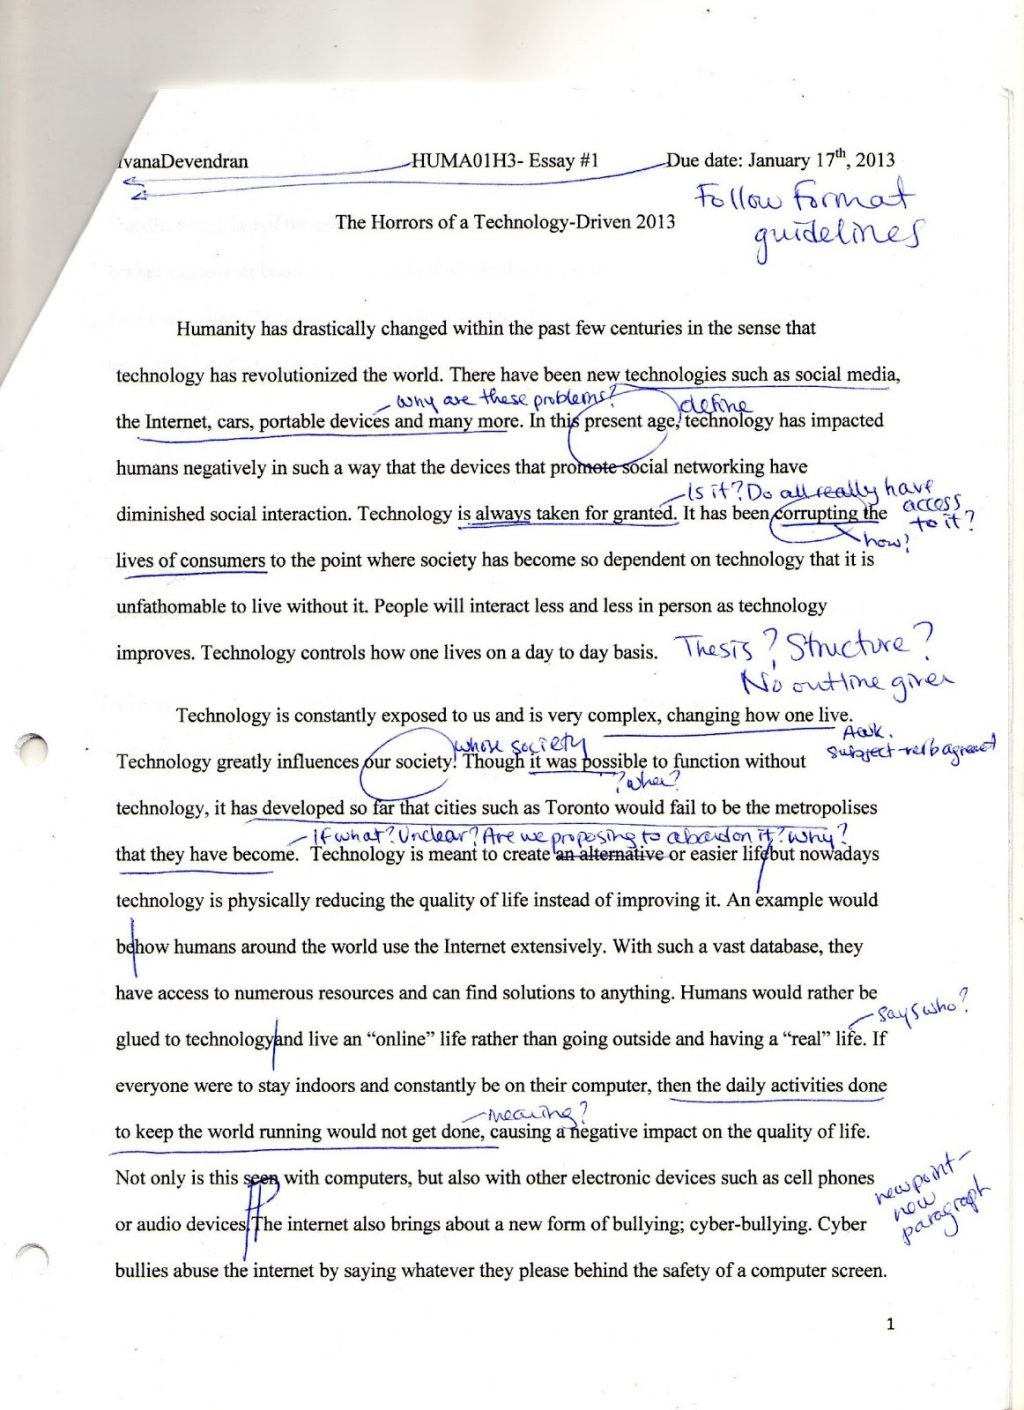 012 Popular Music Researchr Topics Essay Img008 What Should You Avoid In Writing Humanities Appreciation Questions Classical History Persuasive20 1024x1410 Fantastic Research Paper Large